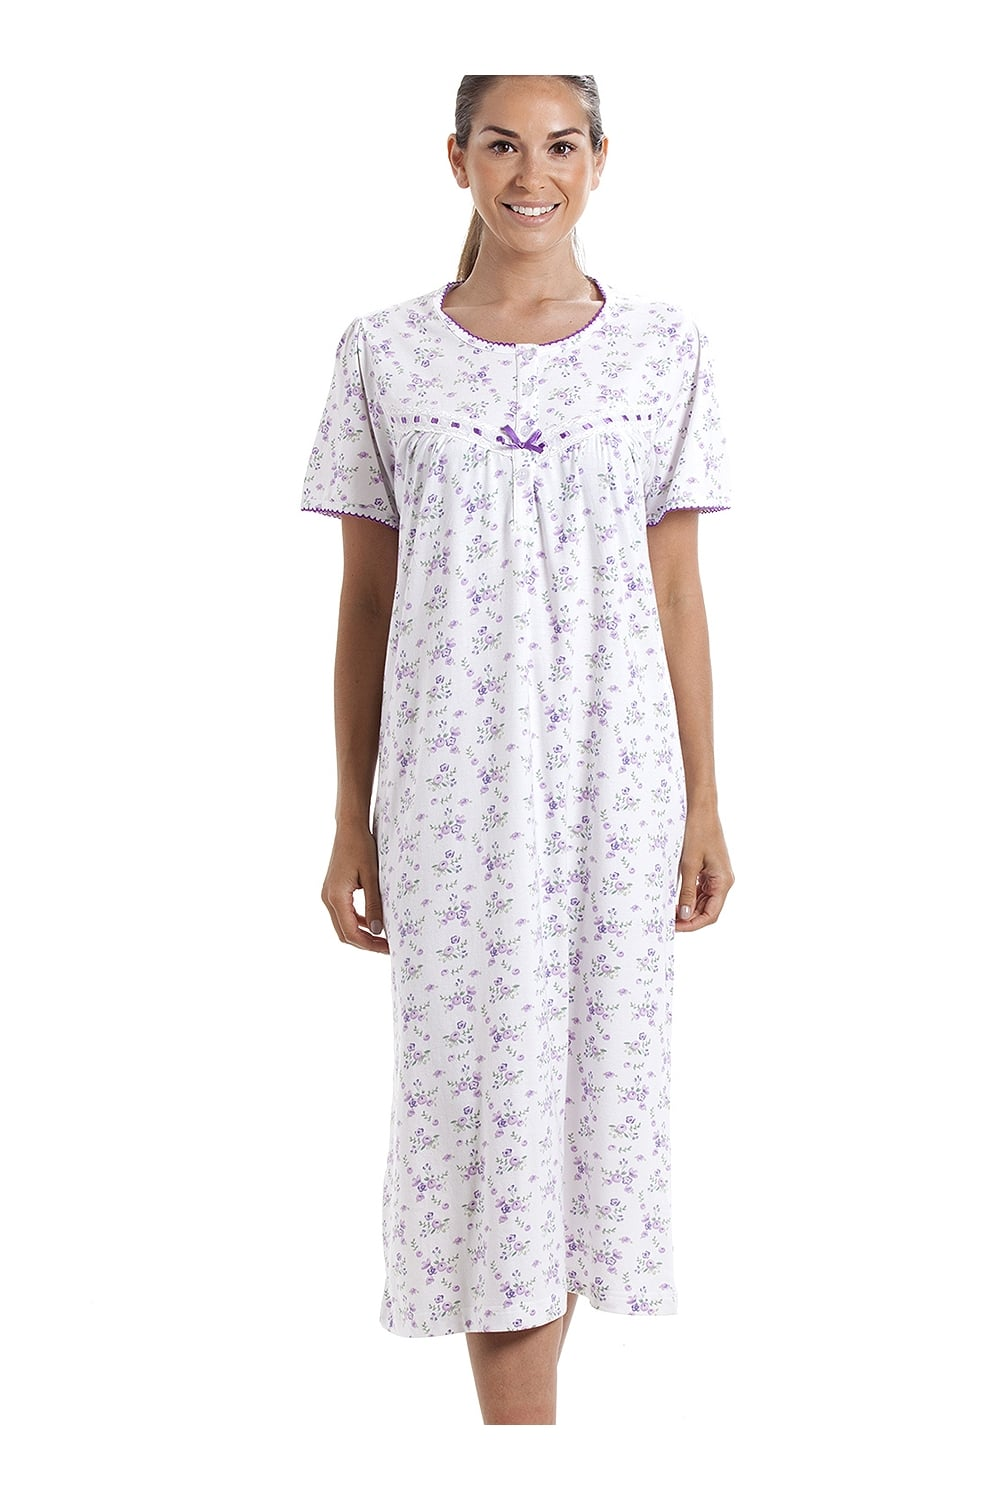 a24b1ae70b Camille Classic Short Sleeve Purple Floral Print 100% Cotton White  Nightdress